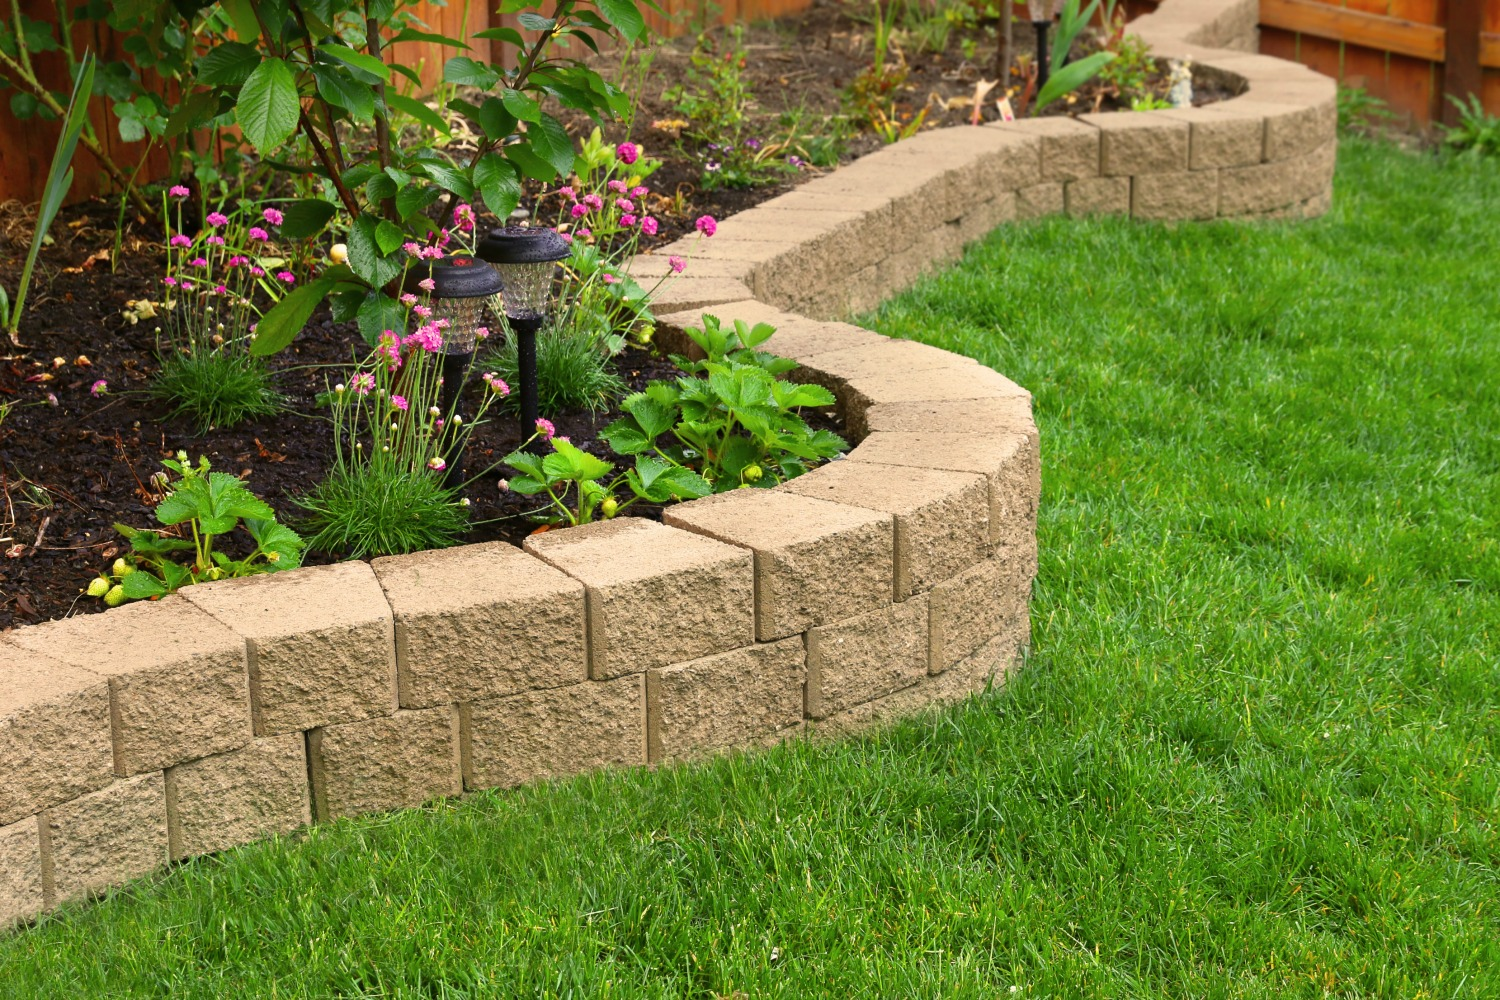 Landscaping for Instant Curb Appeal